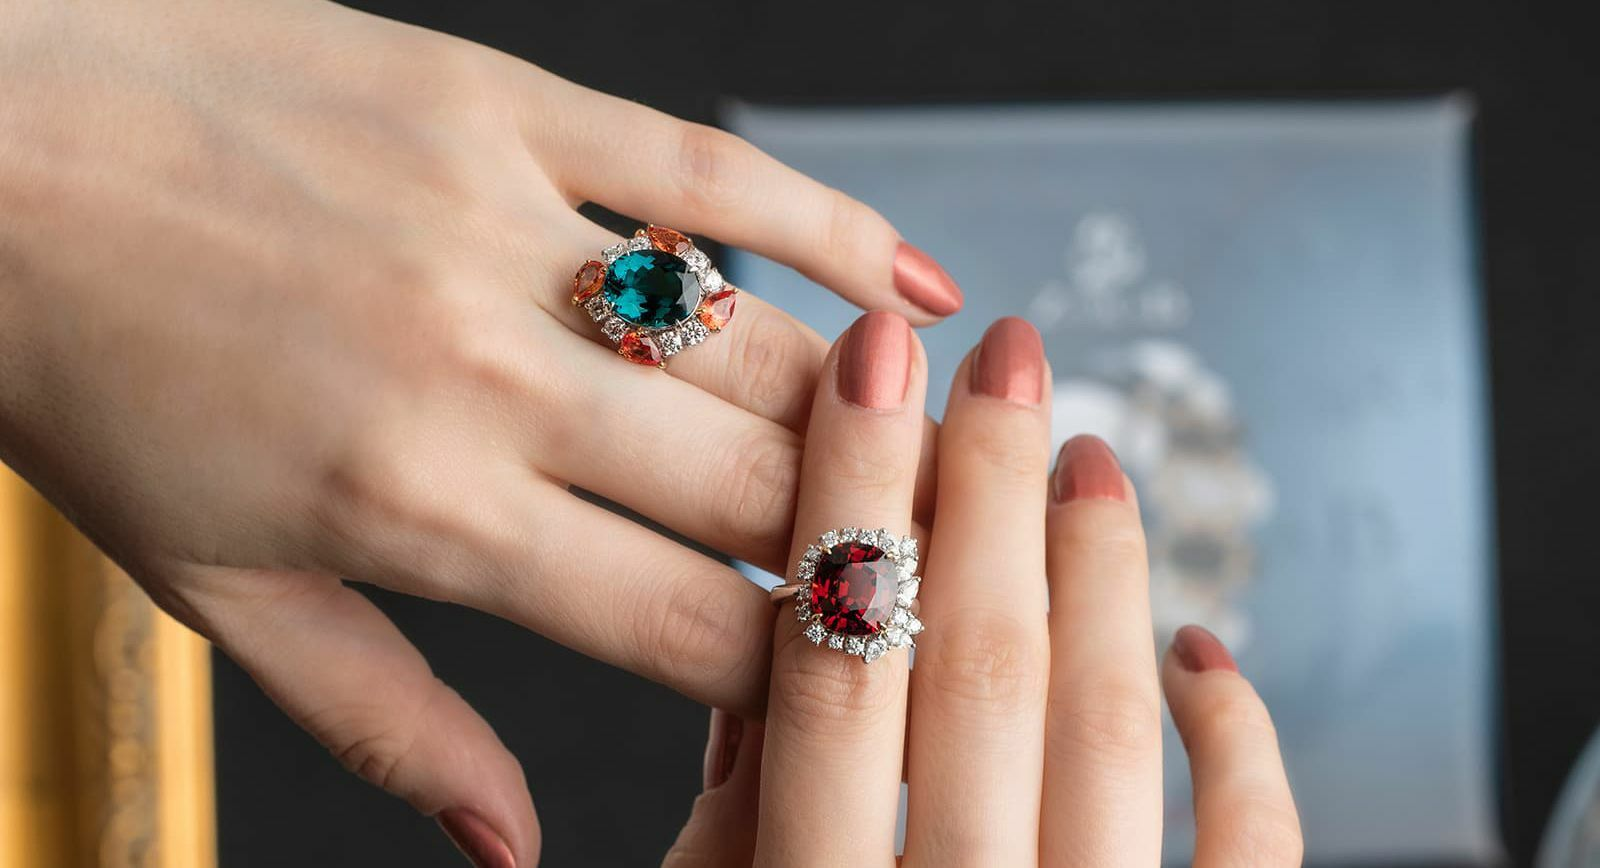 Jessie Foo Yuli Jewellery blue tourmaline ring with padparadscha sapphires and diamonds and spessartite garnet ring with diamonds